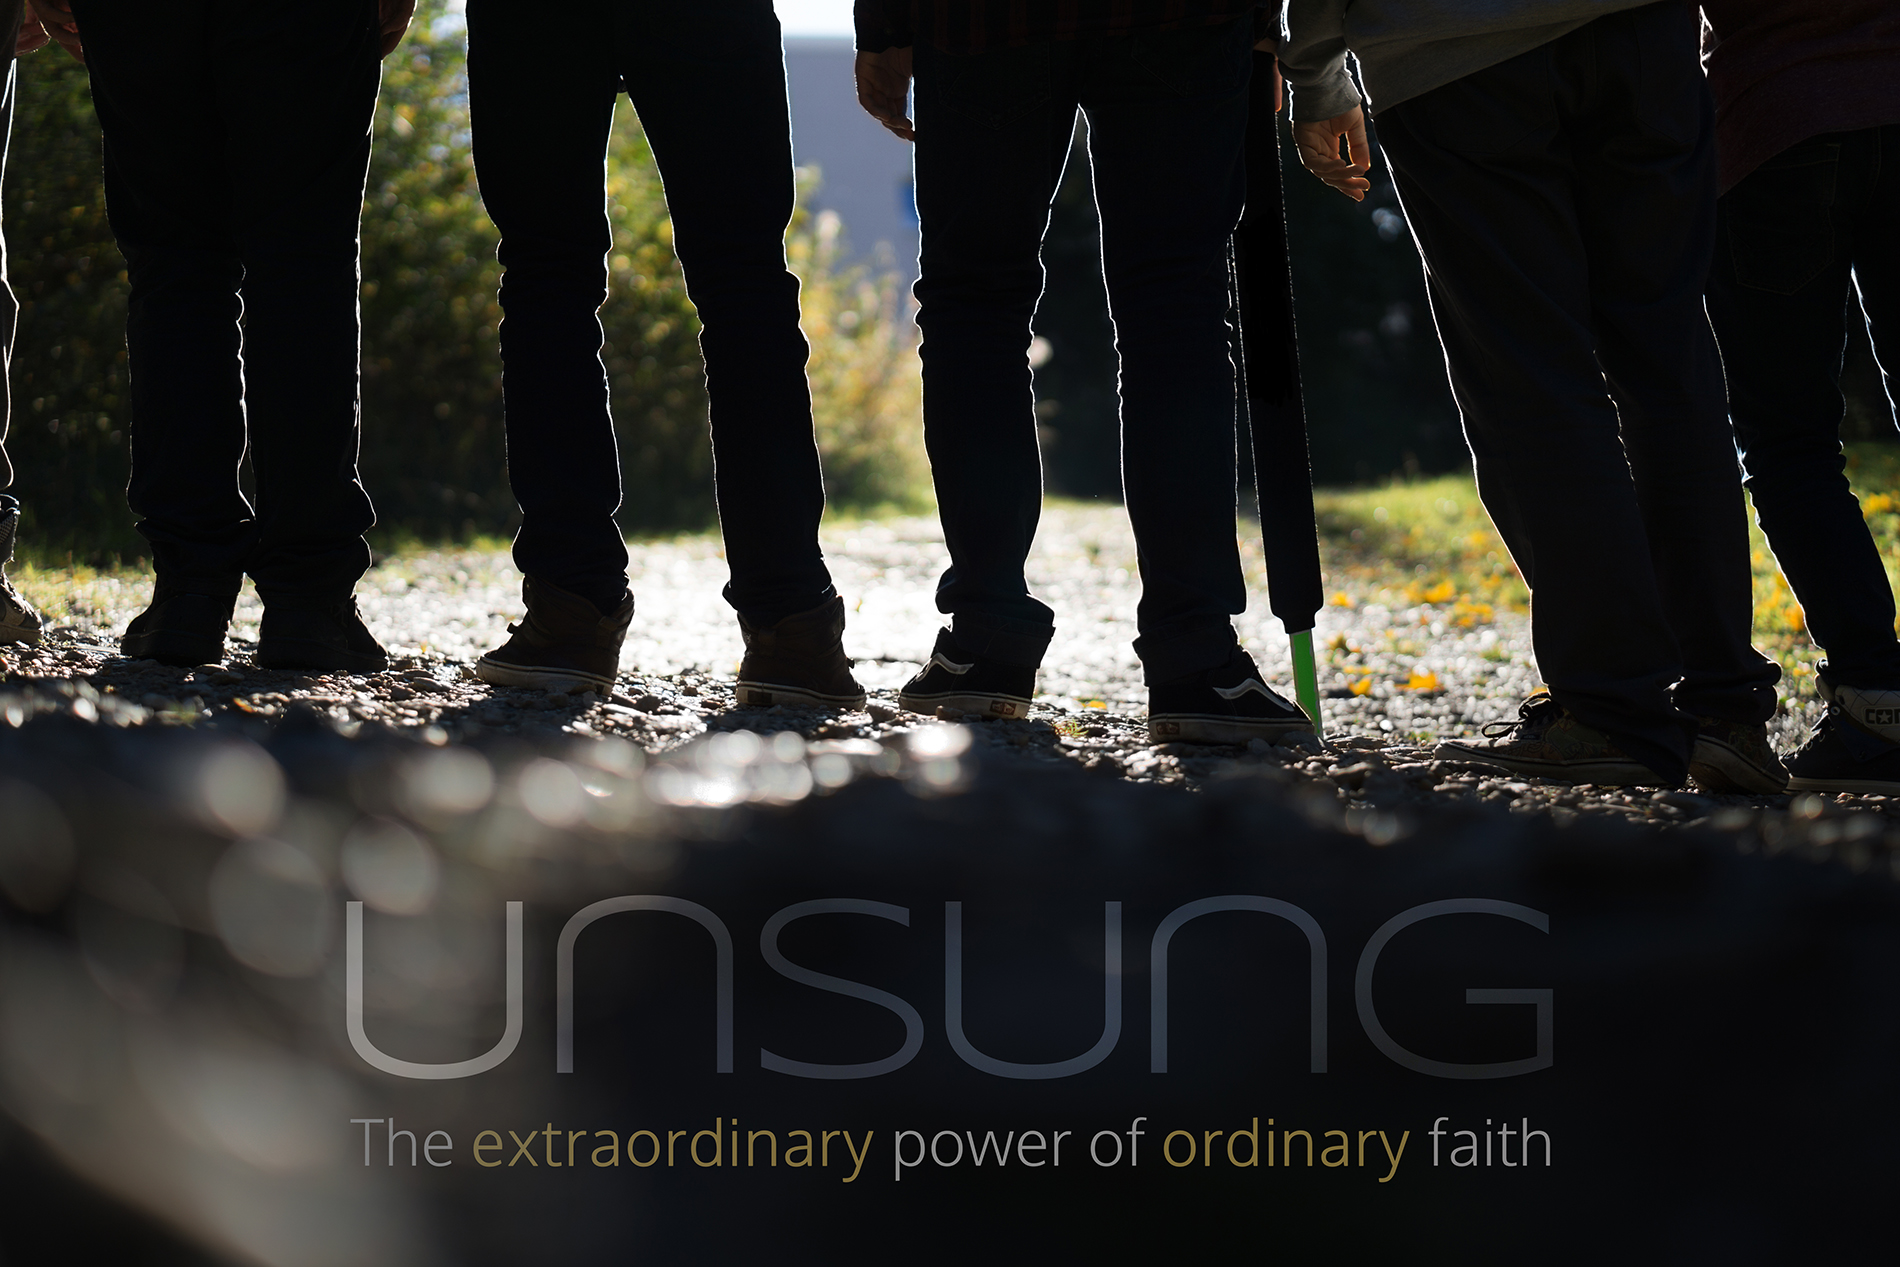 Unsung - The extraordinary power of ordinary faith - New series Starting March 2018